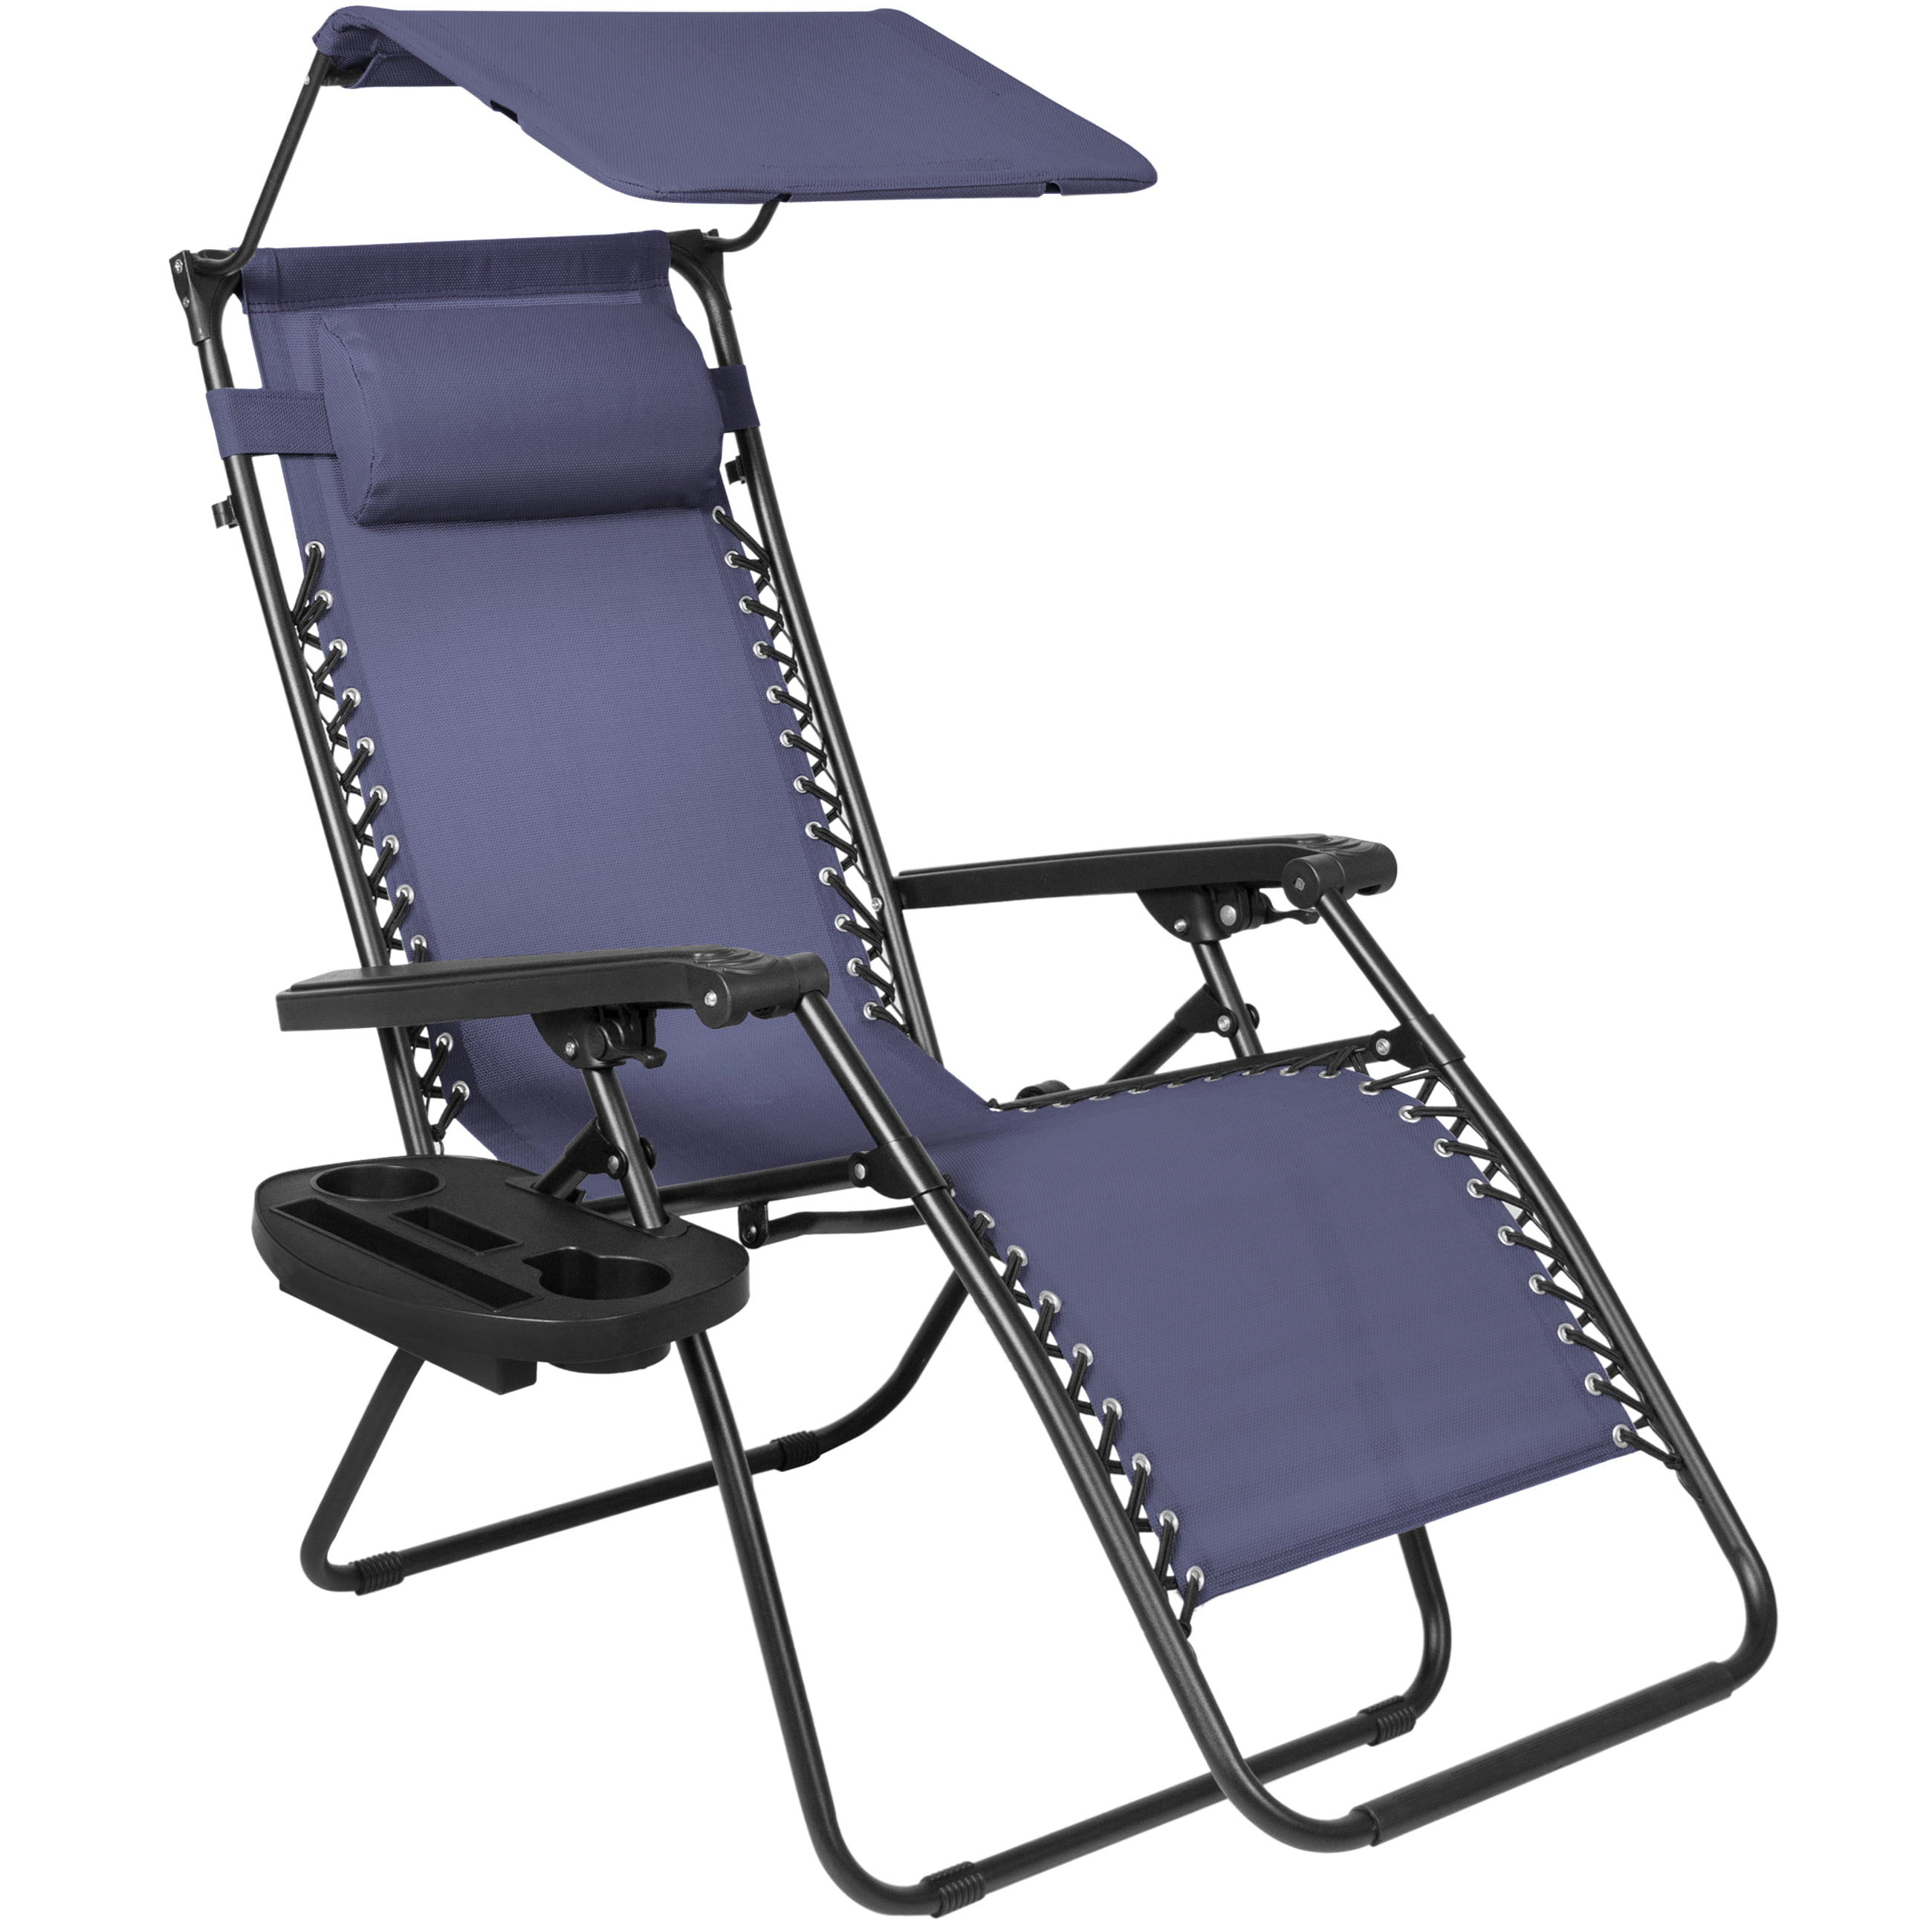 Best Choice Products Folding Zero Gravity Recliner Lounge Chair w  Canopy Shade & Magazine Cup Holder (Navy Blue) by